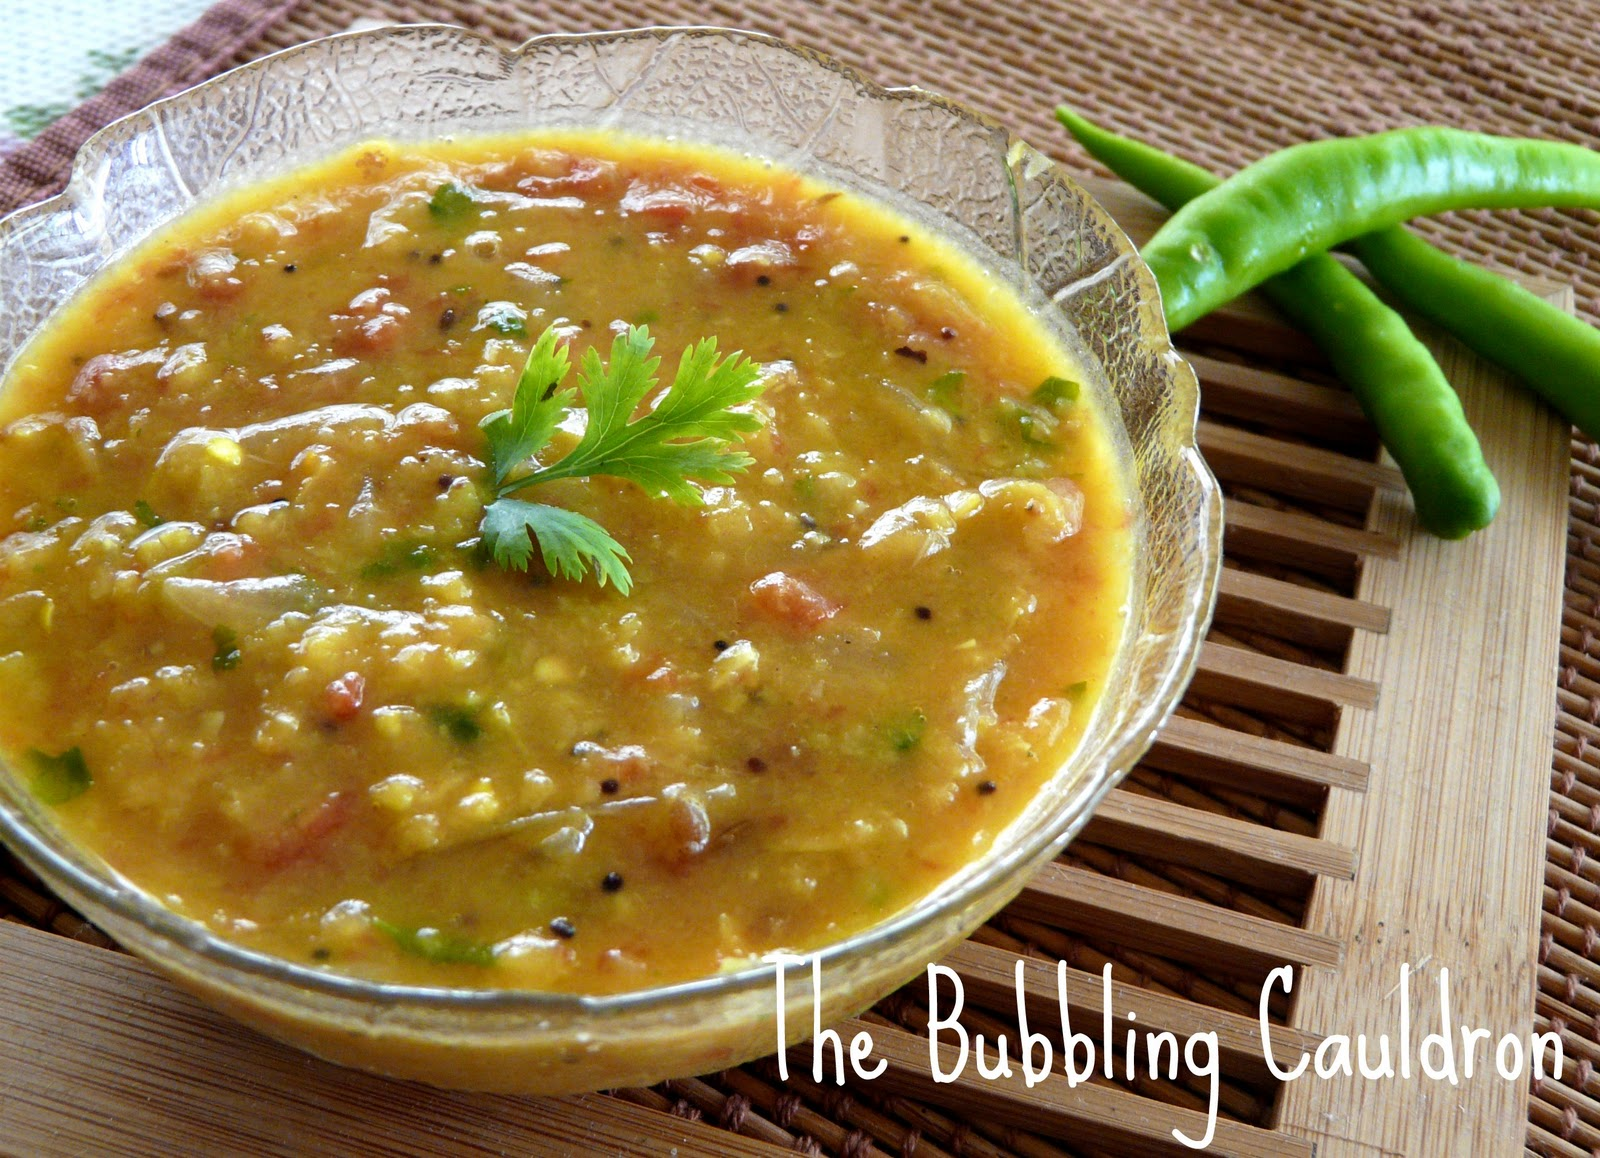 The bubbling cauldron pappu pulusu andhra food series for Andhra cuisine dishes